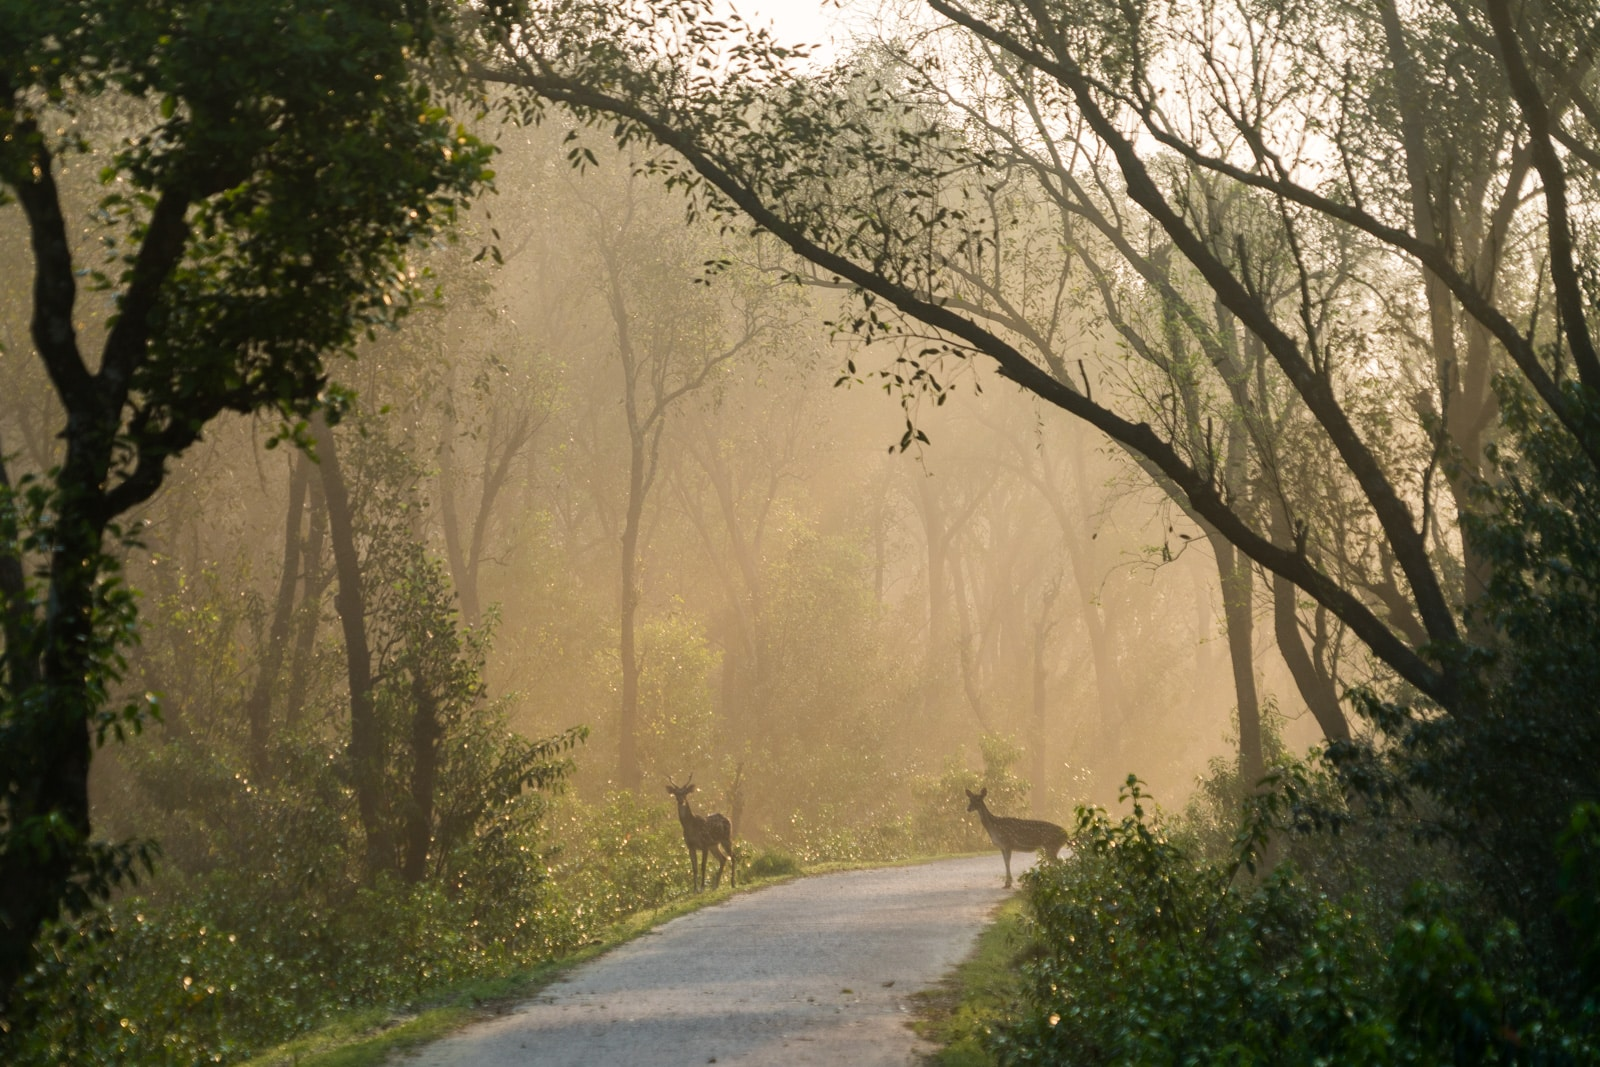 Travel guide to Nijhum Dwip, Bangladesh - Silhouettes of spotted deer crossing the road in early morning light - Lost With Purpose travel blog